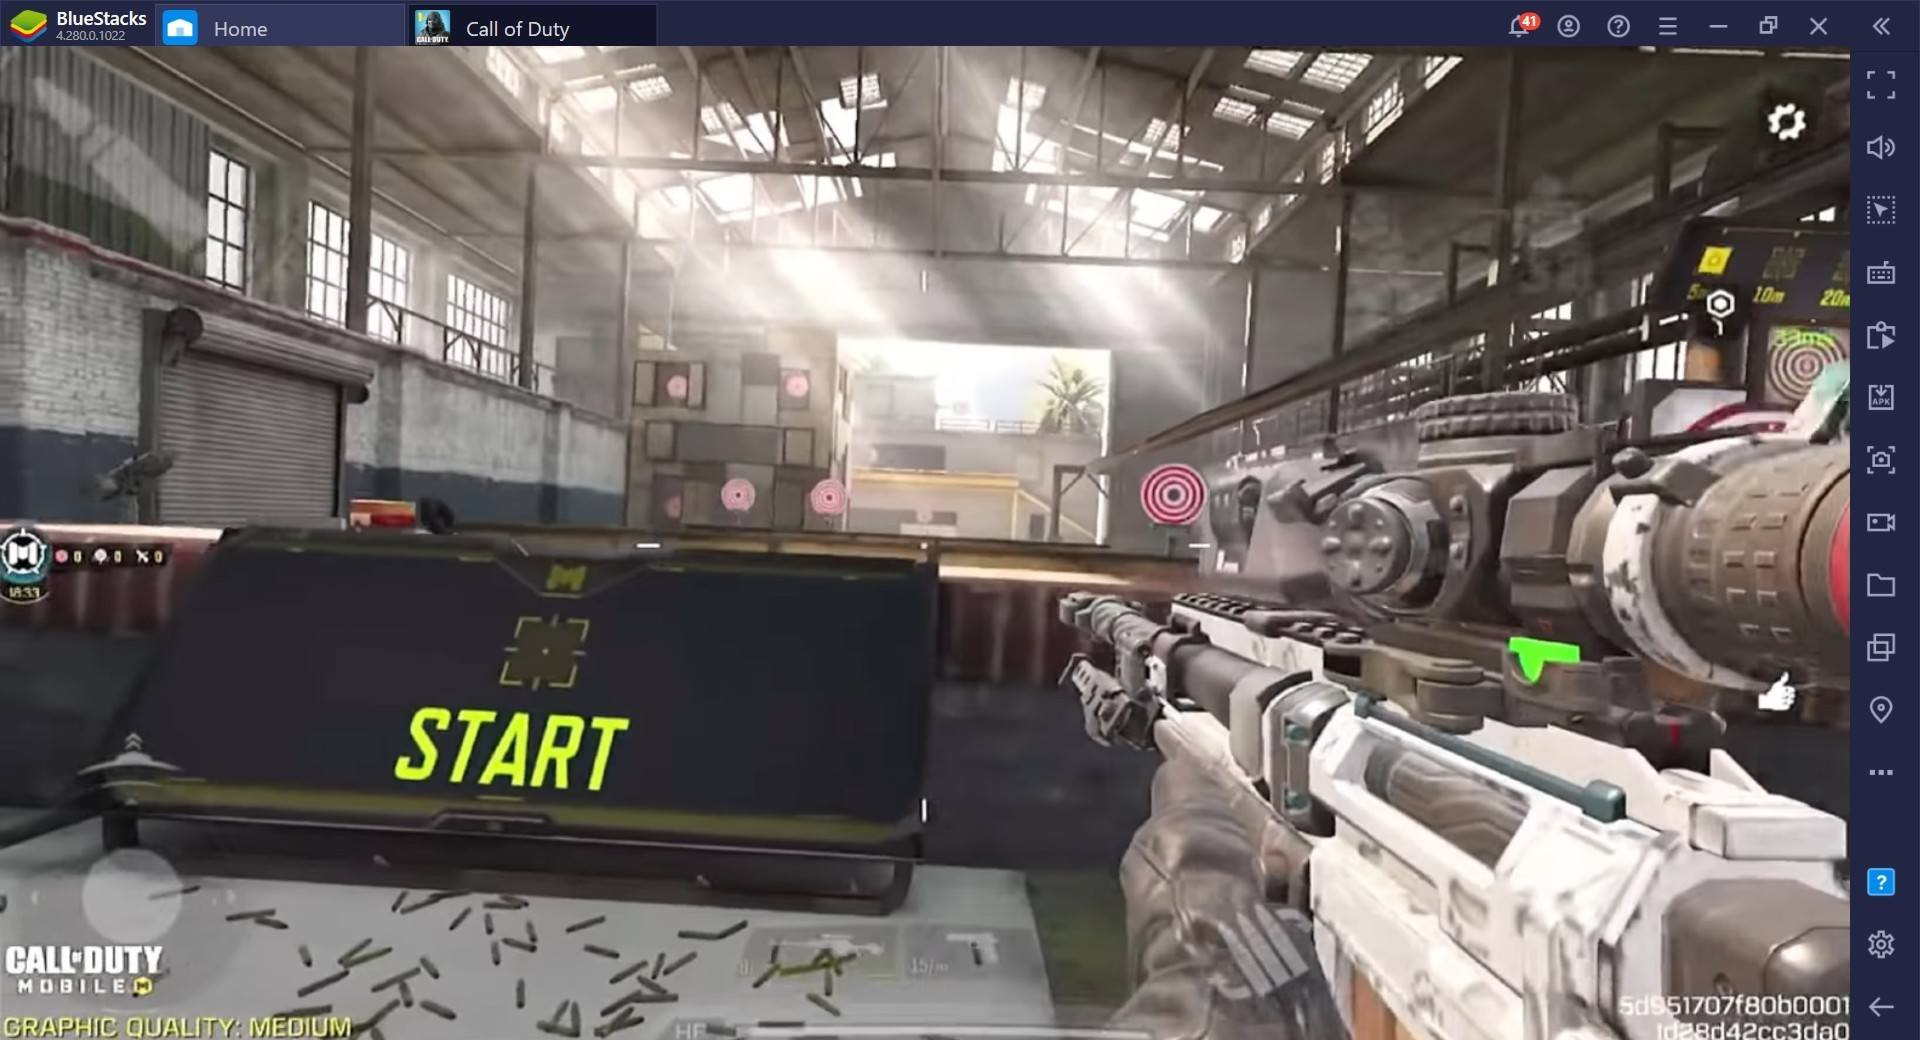 Call of Duty Mobile Sniping Guide for DL-Q33 Players, Sniping for Ranked